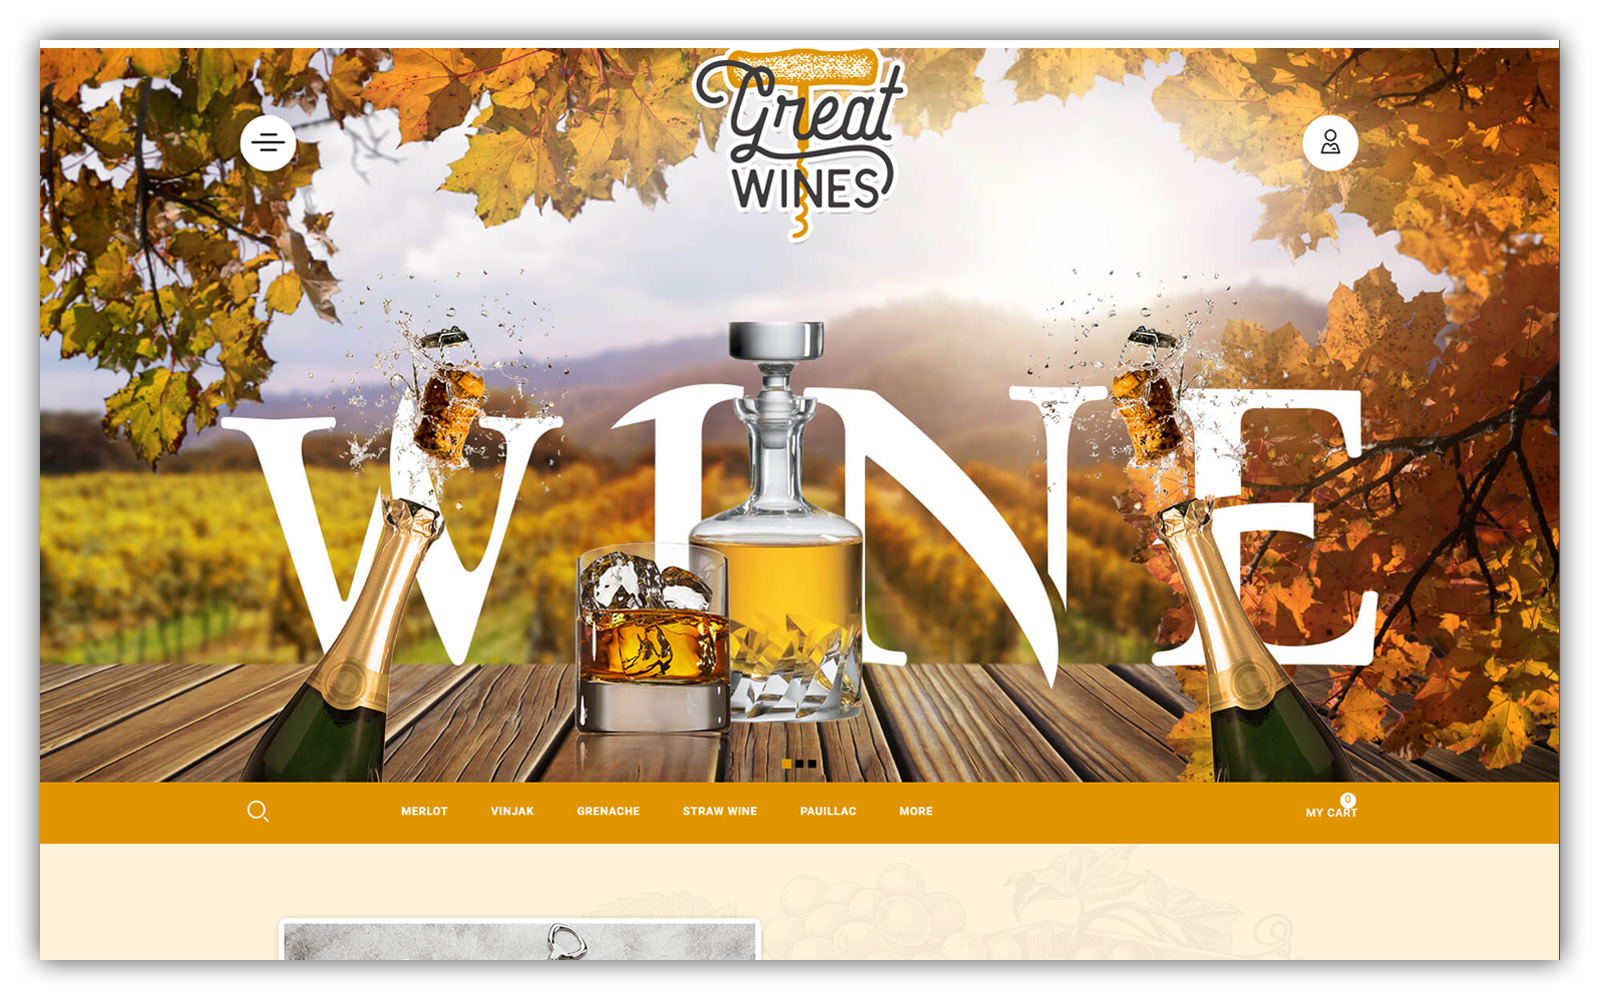 Greatwine - Wine Store OpenCart Template